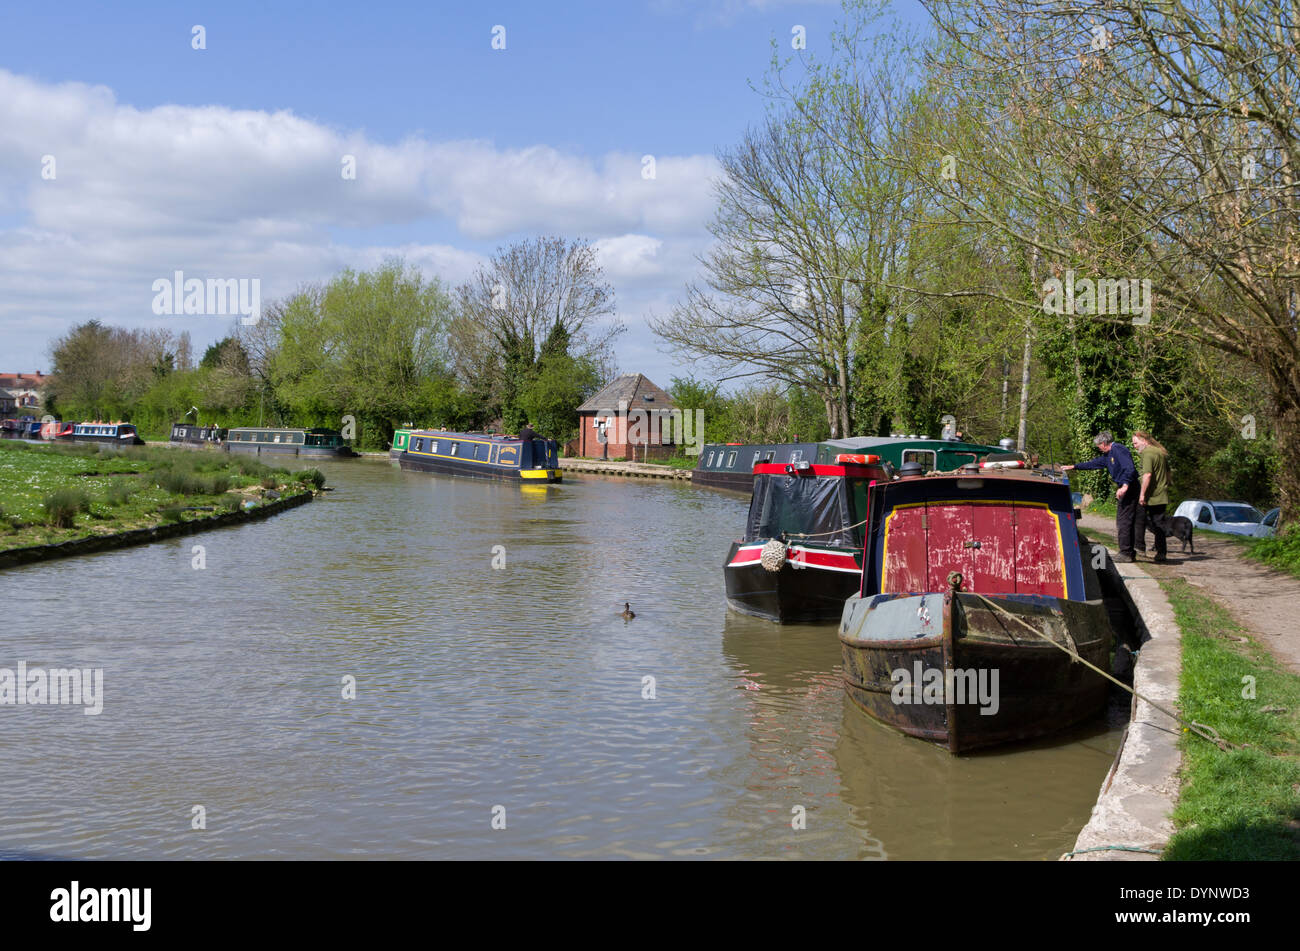 Narrowboats moored on the Grand Union Canal, Cosgrove, Northamptonshire Stock Photo